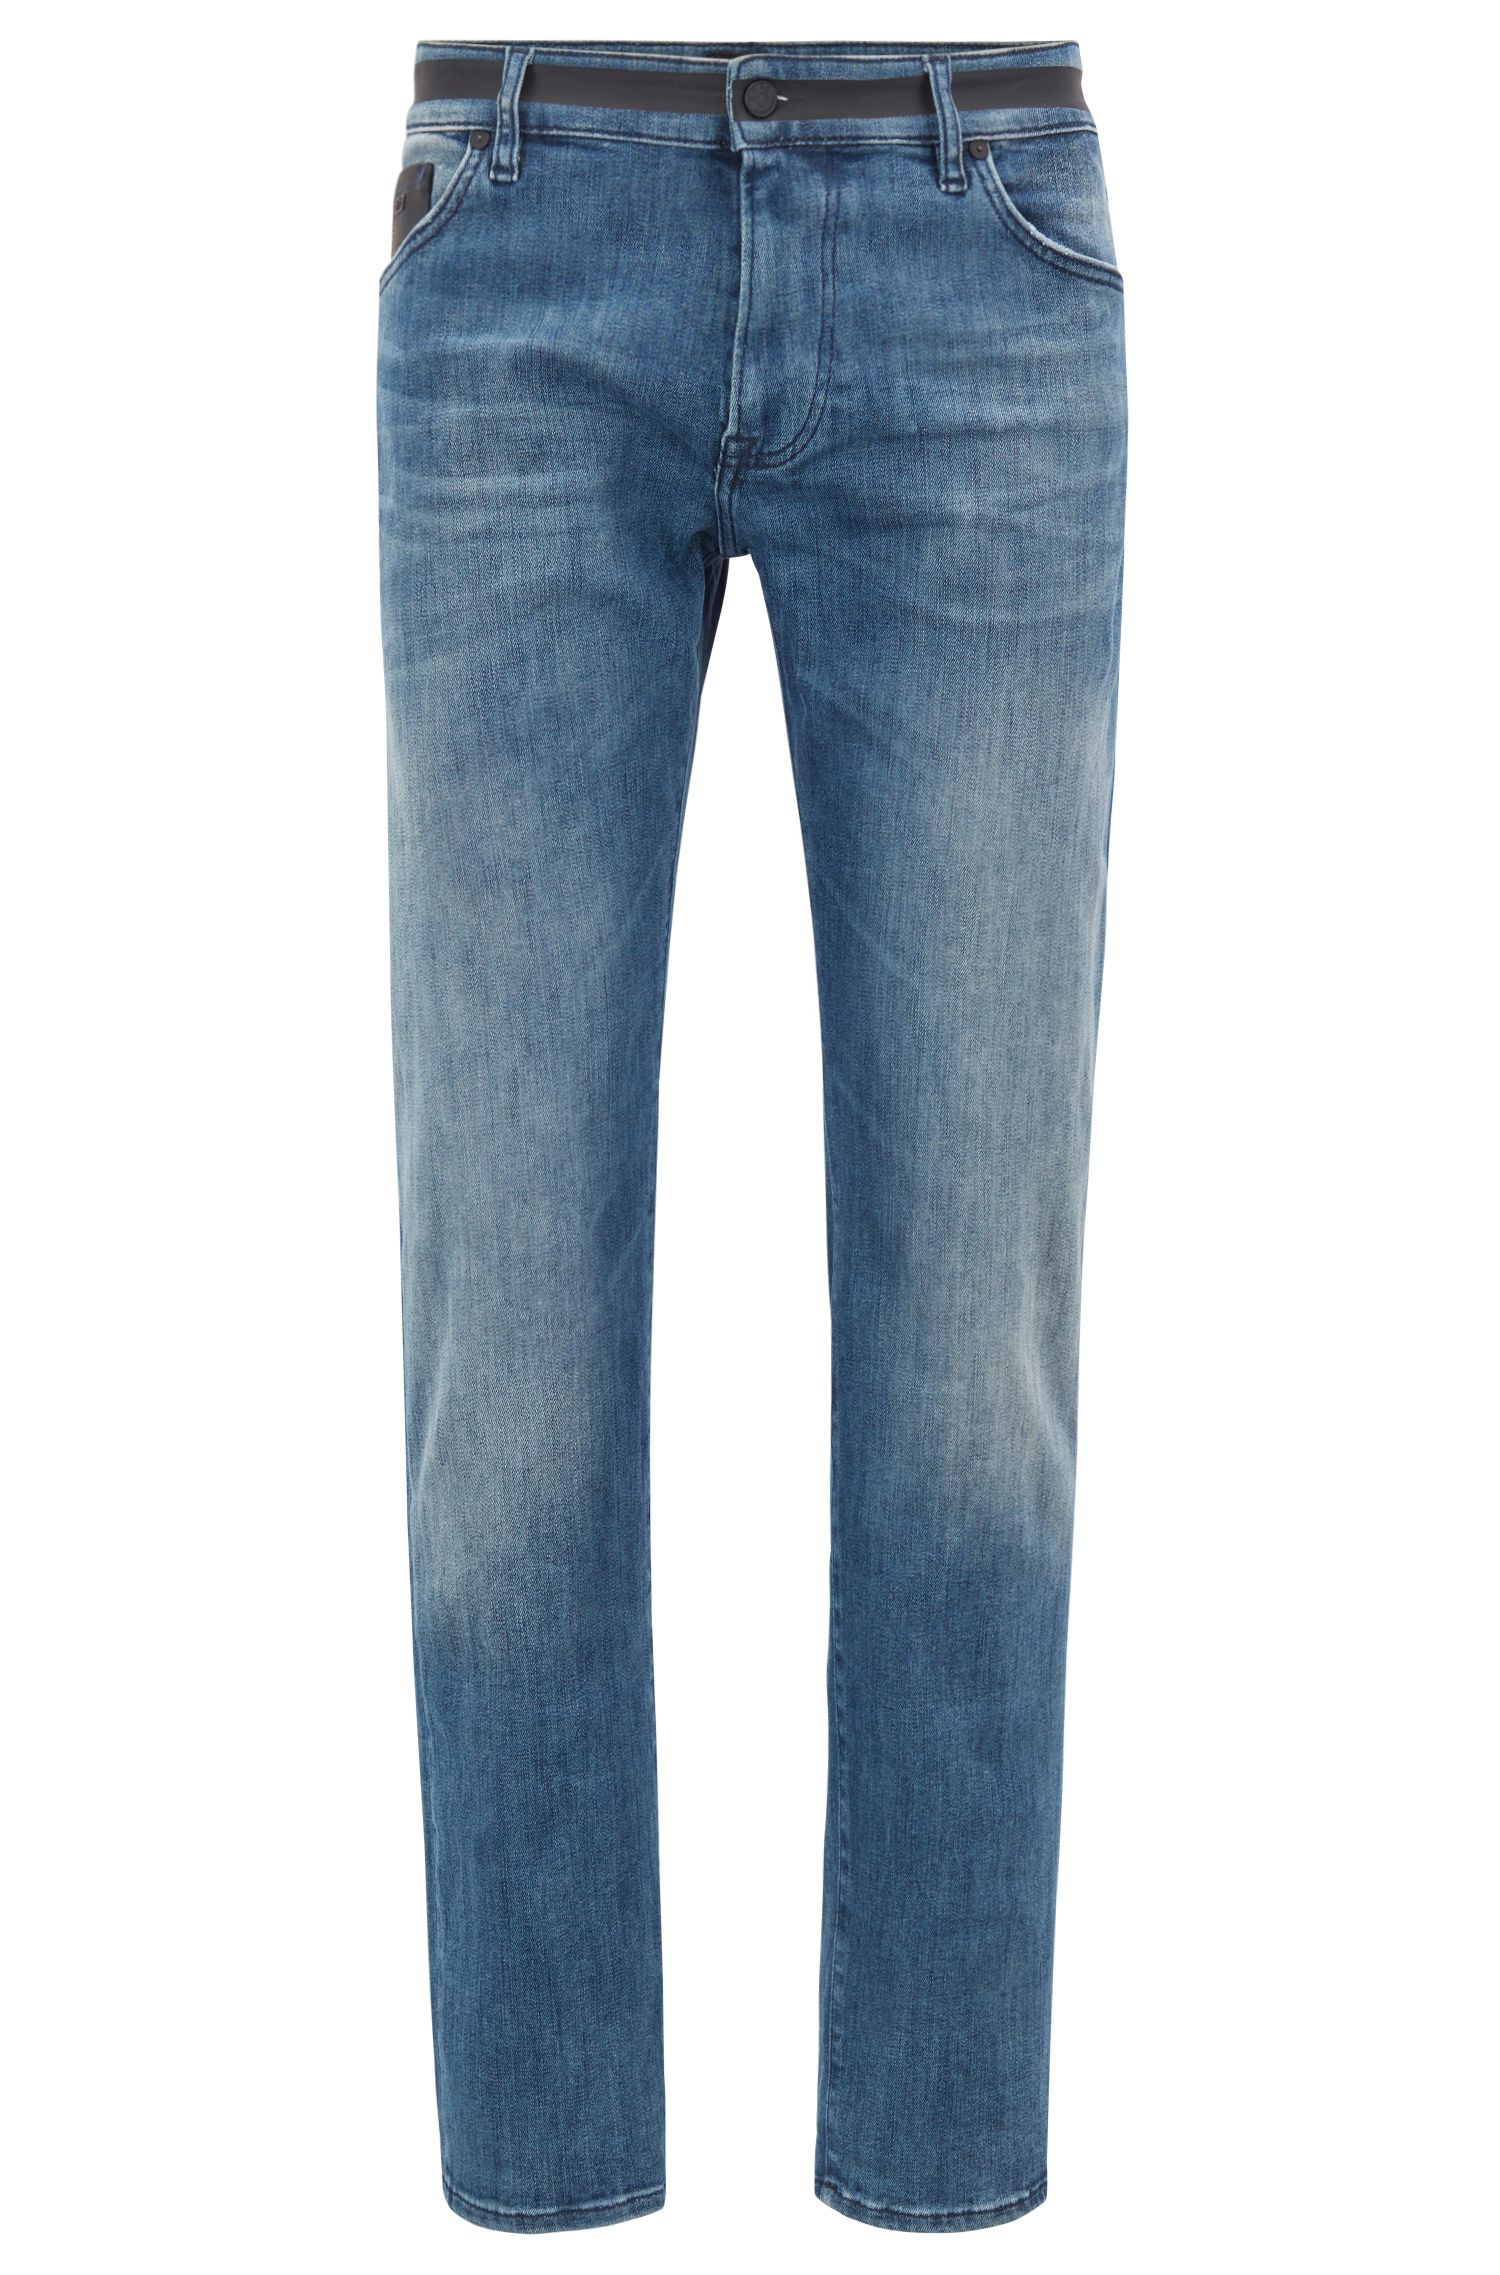 Jean Regular Fit en denim stretch avec empiècements noirs, Bleu